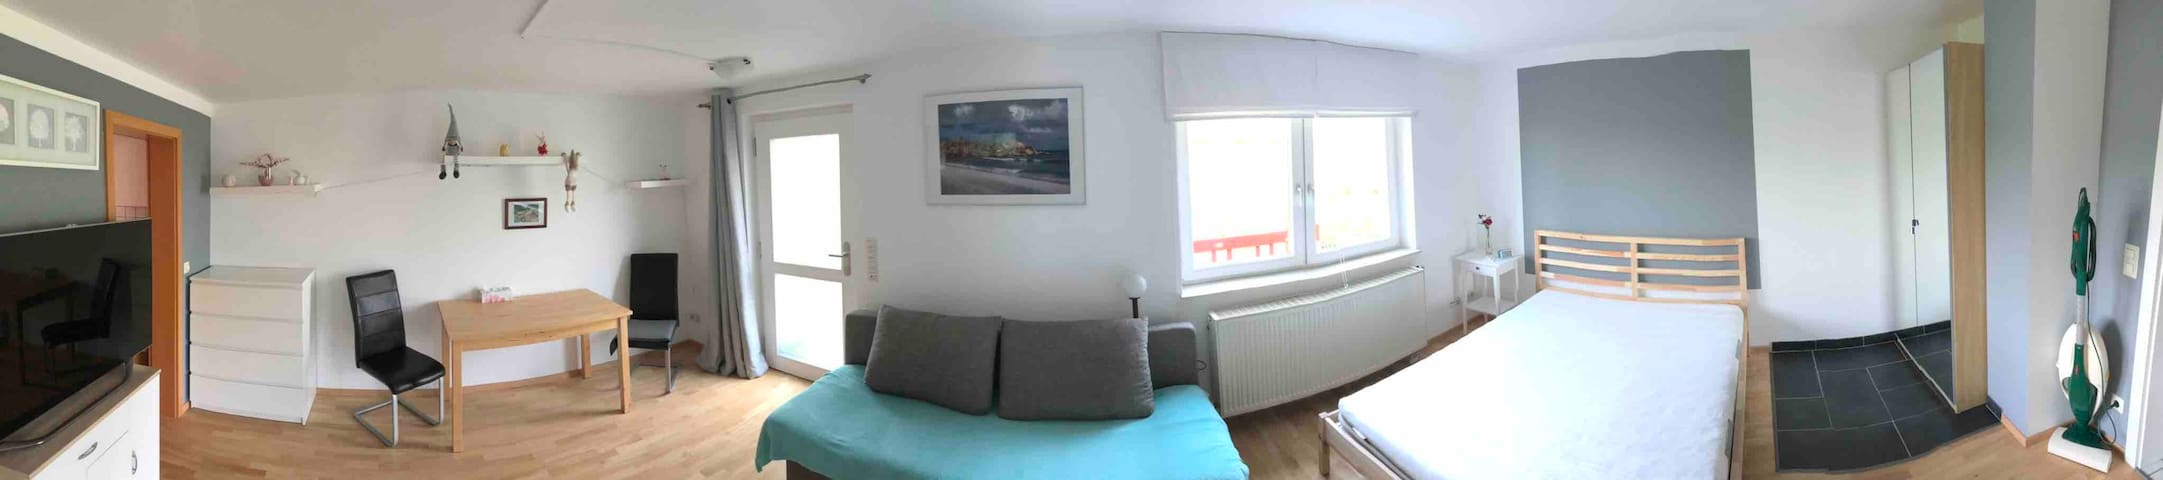 Airbnb Lichtenau Vacation Rentals Places To Stay